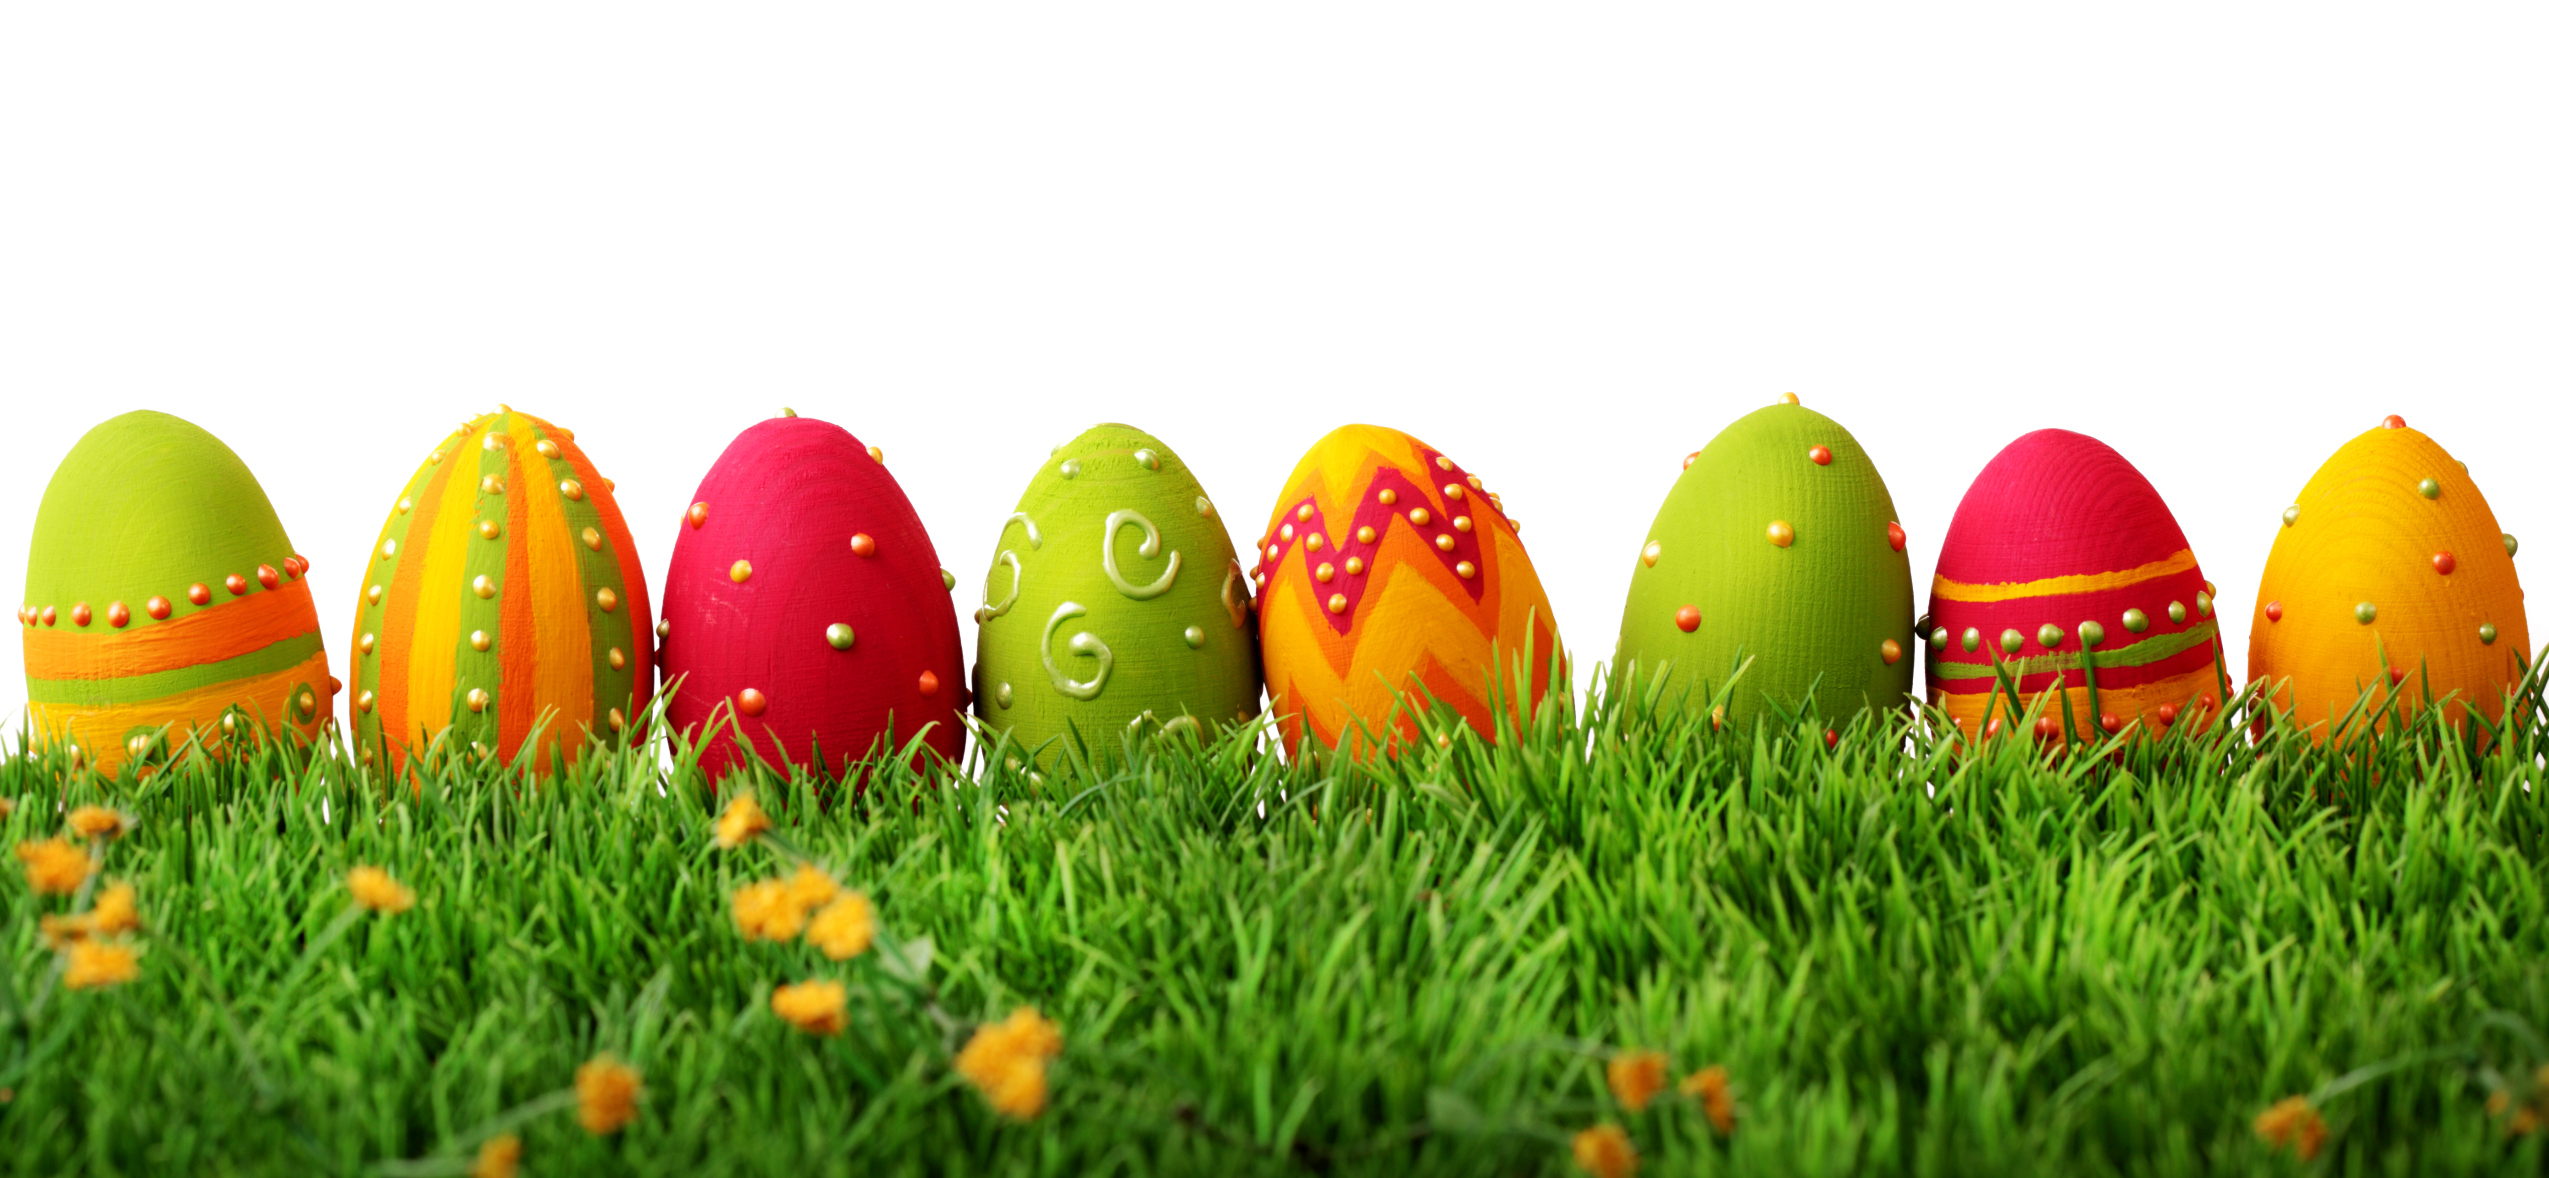 Happy easter png egg grass. Colorful eggs